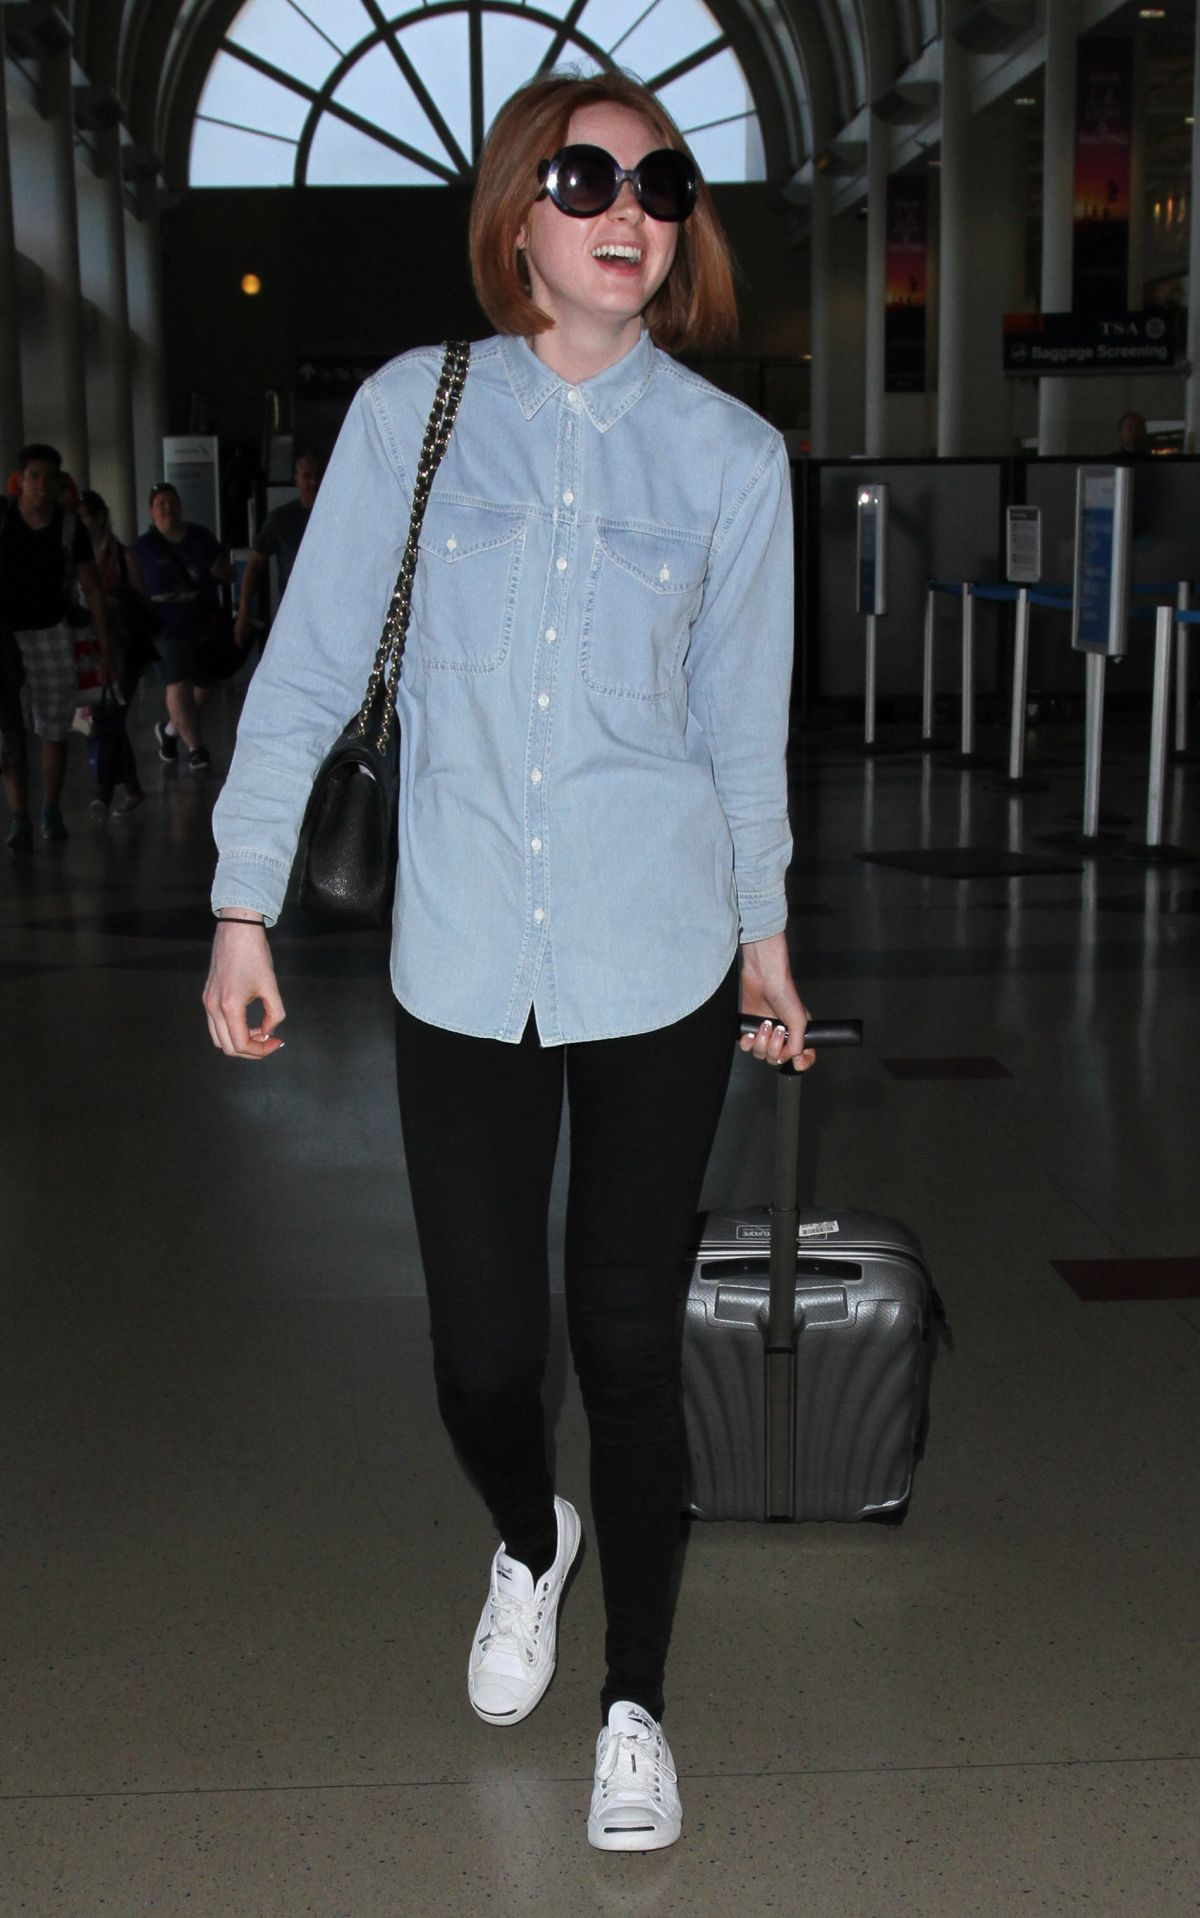 KAREN GILLAN Arriving at Los Angeles International Airport 05/29/2015